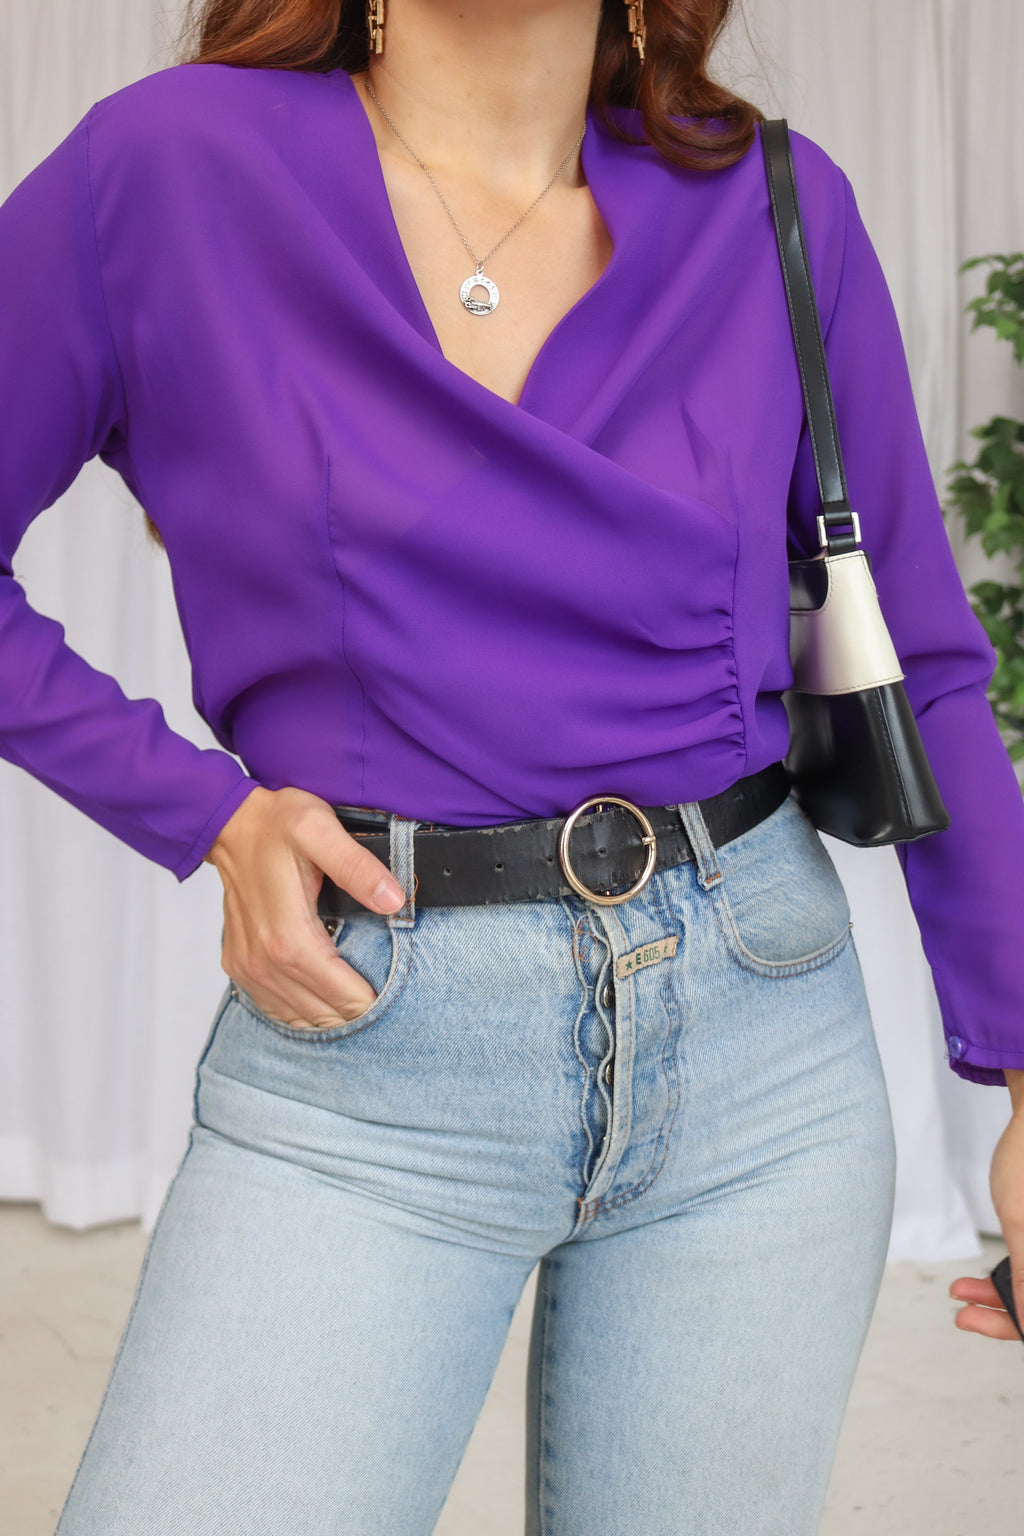 VintageWrap Blouse in Purple - Dirty Disco